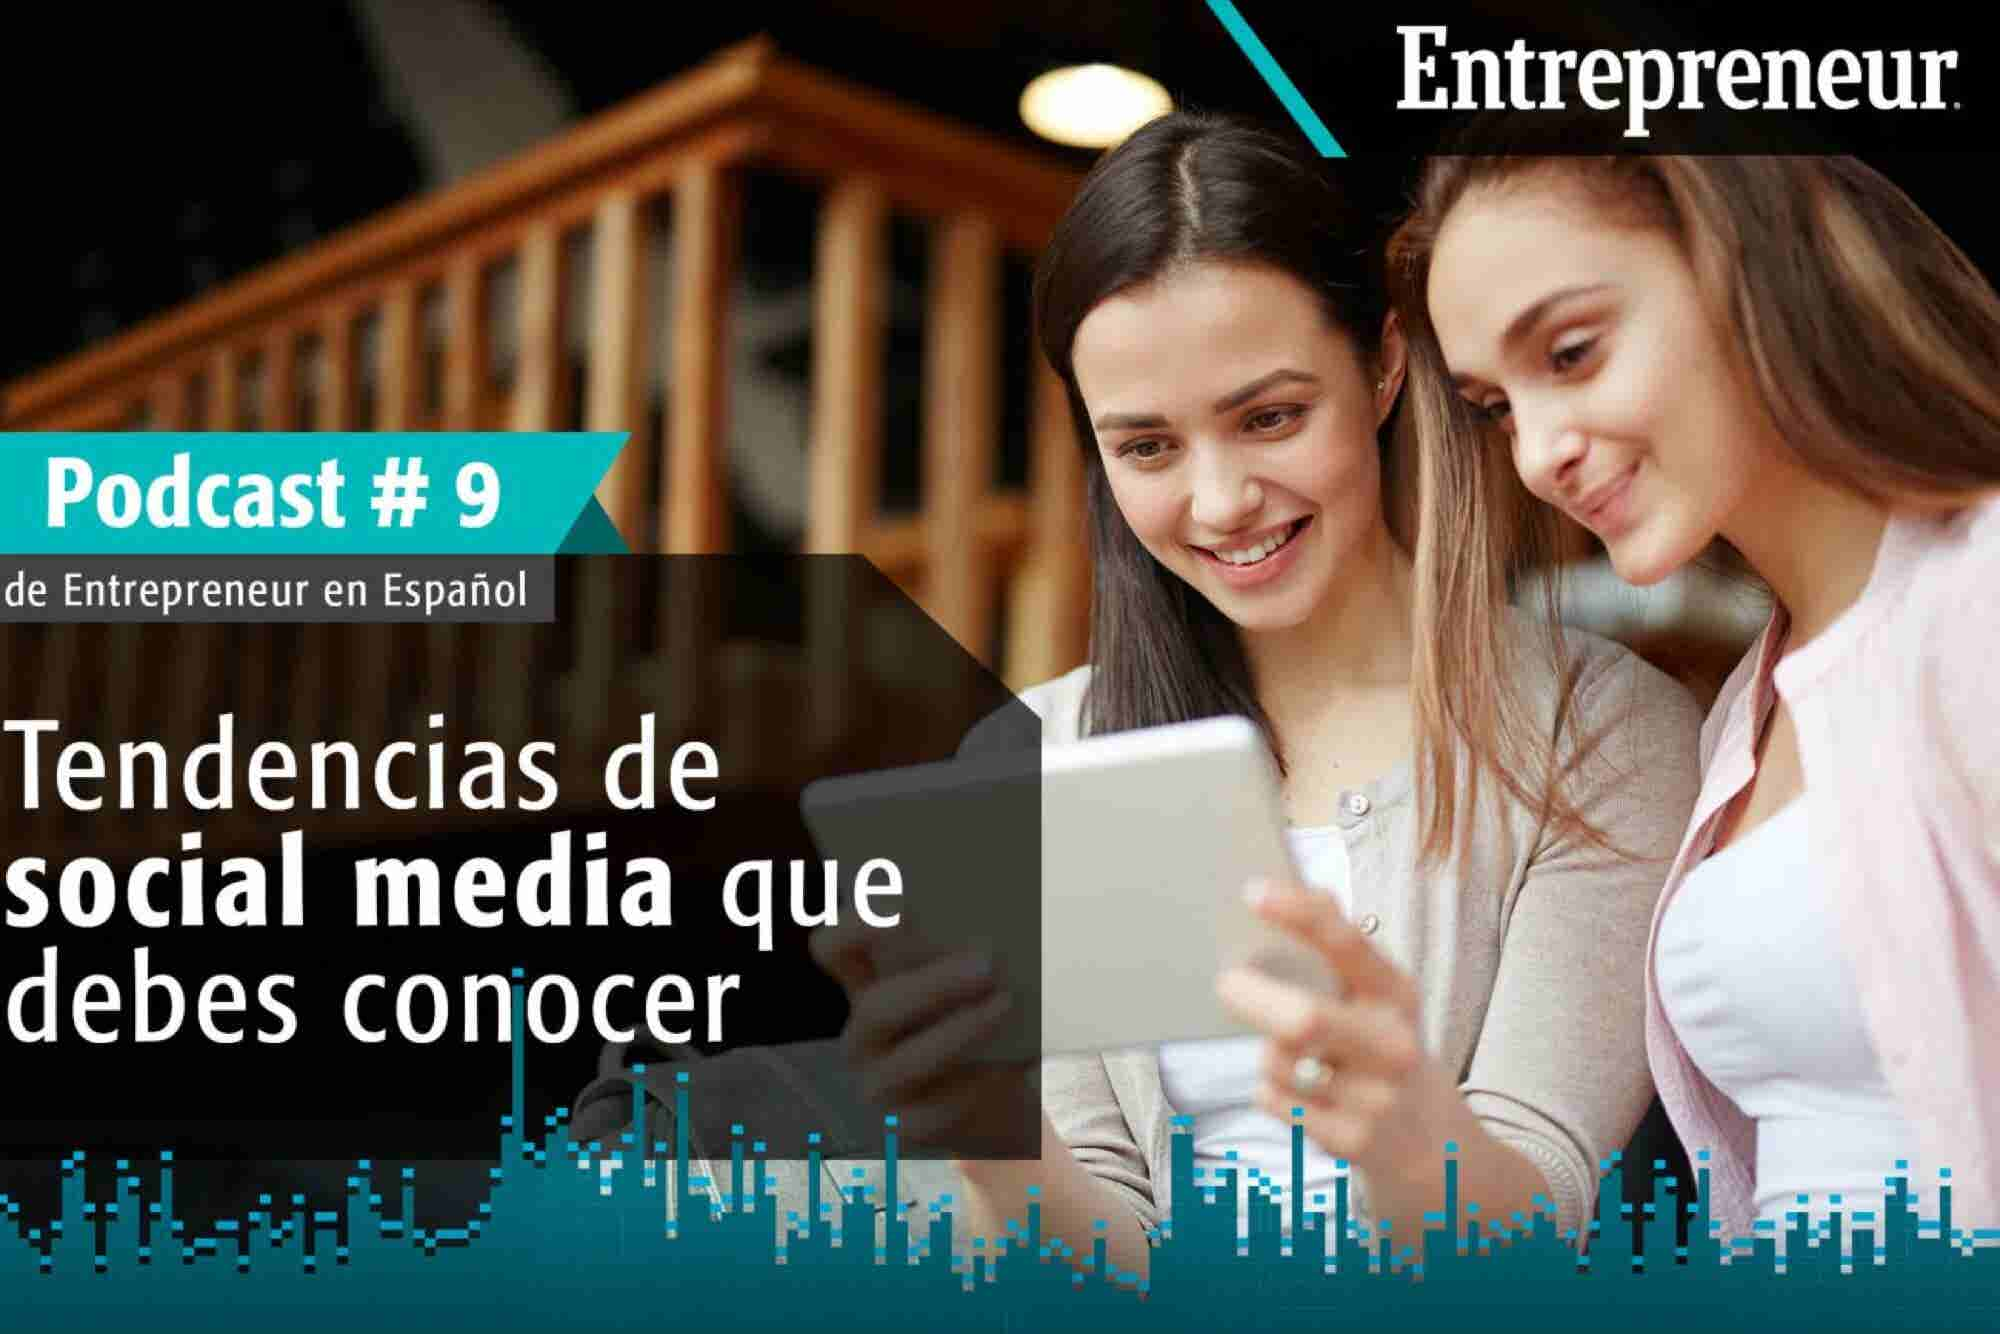 Podcast Entrepreneur #9: Tendencias de social media que debes conocer